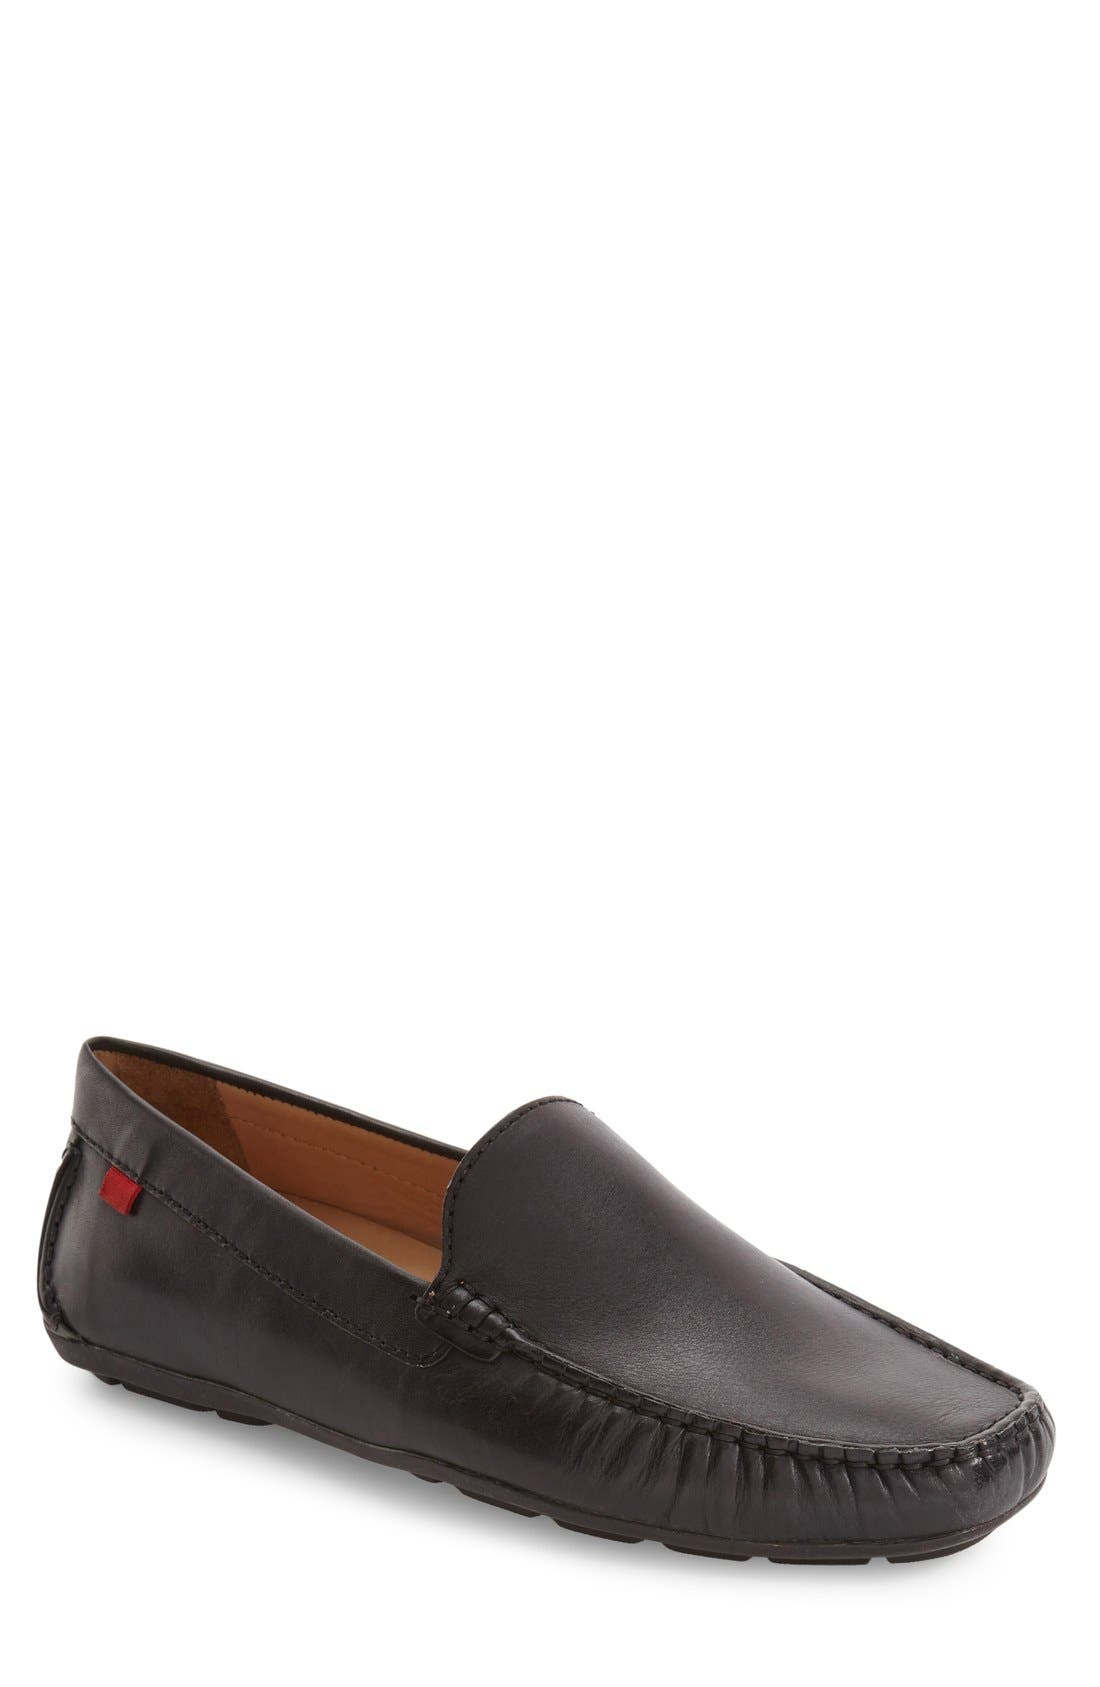 MARC JOSEPH NEW YORK, Venetian Driving Loafer, Main thumbnail 1, color, 001